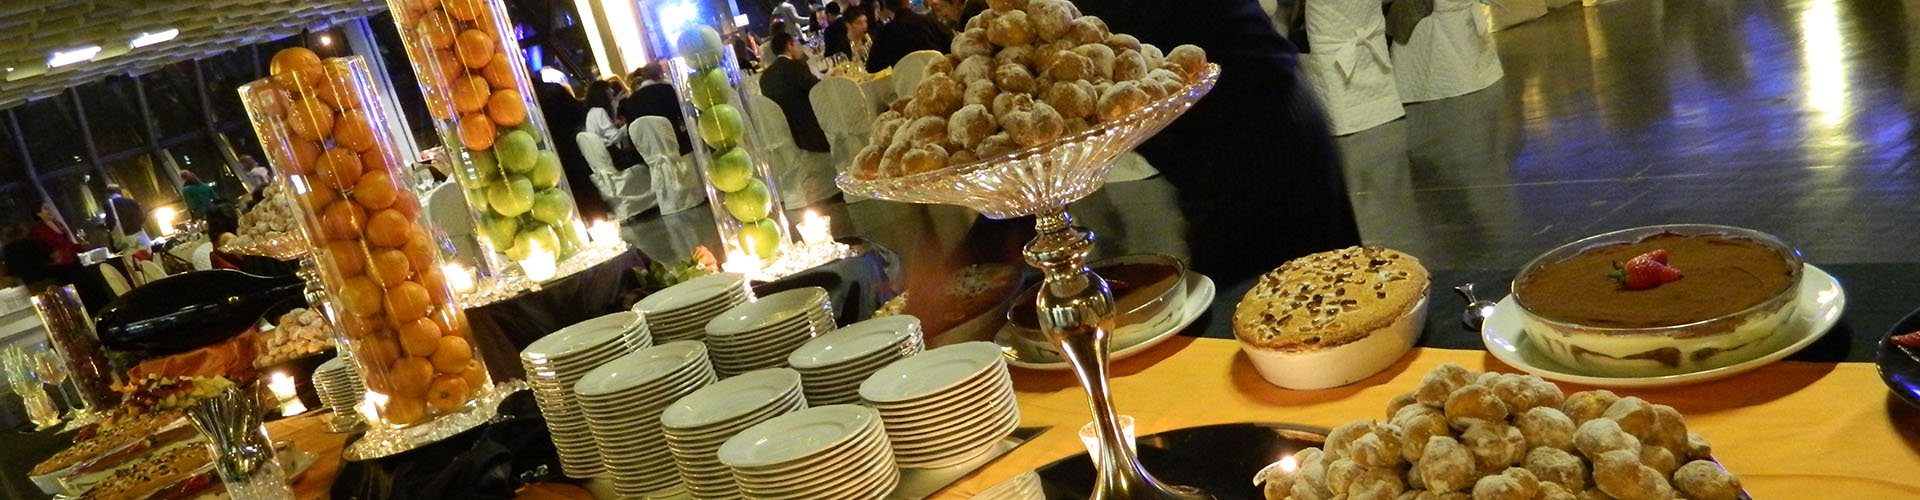 Conventions and catering